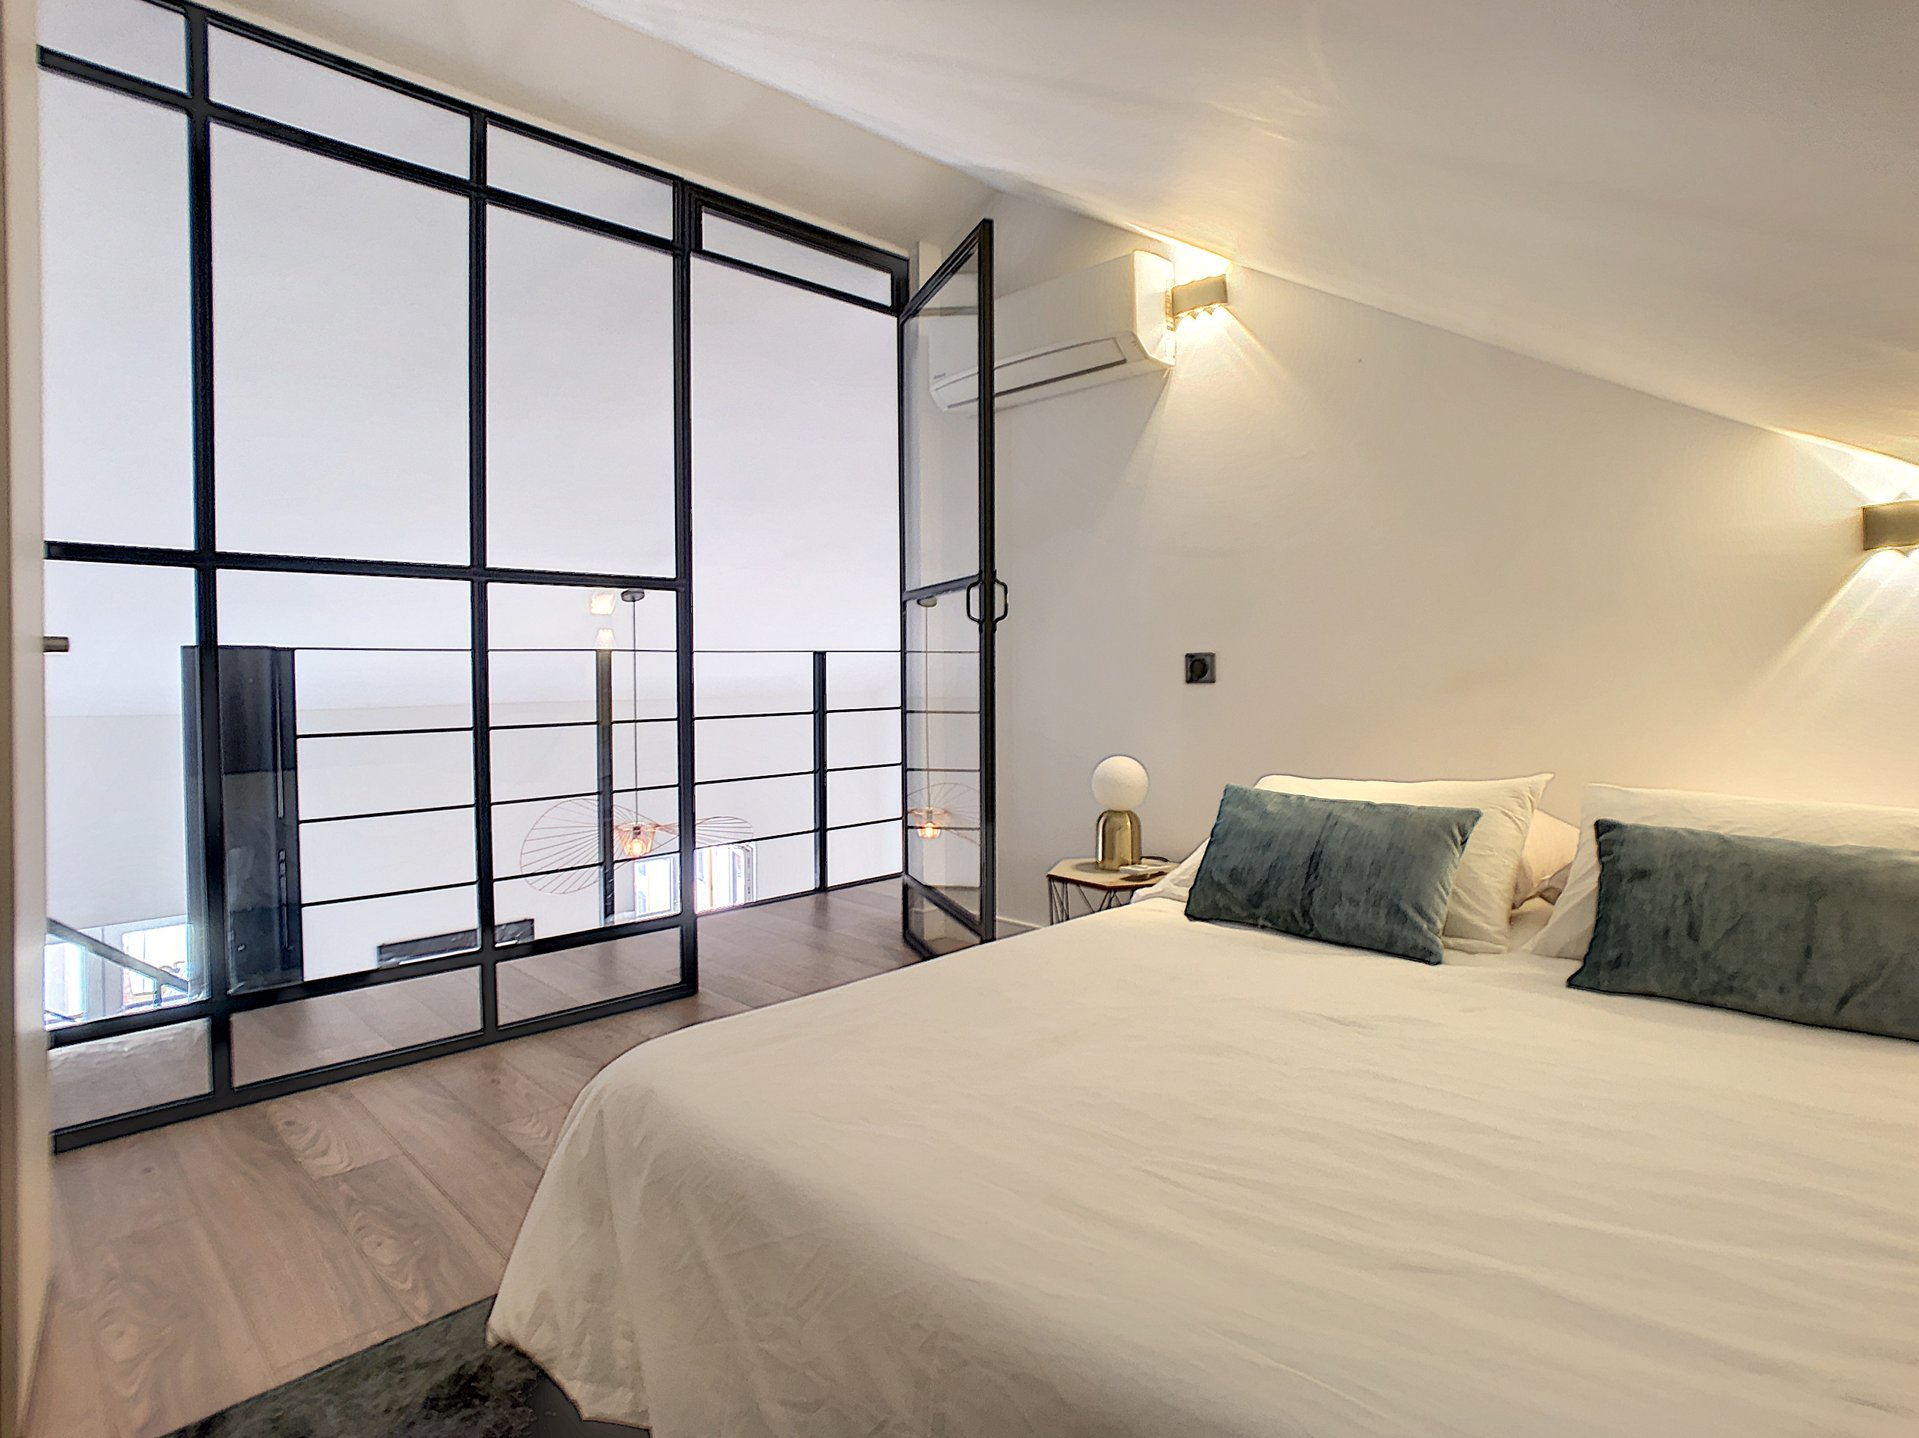 CANNES FORVILLE - Superb 3 bedrooms flat with contemporary fittings